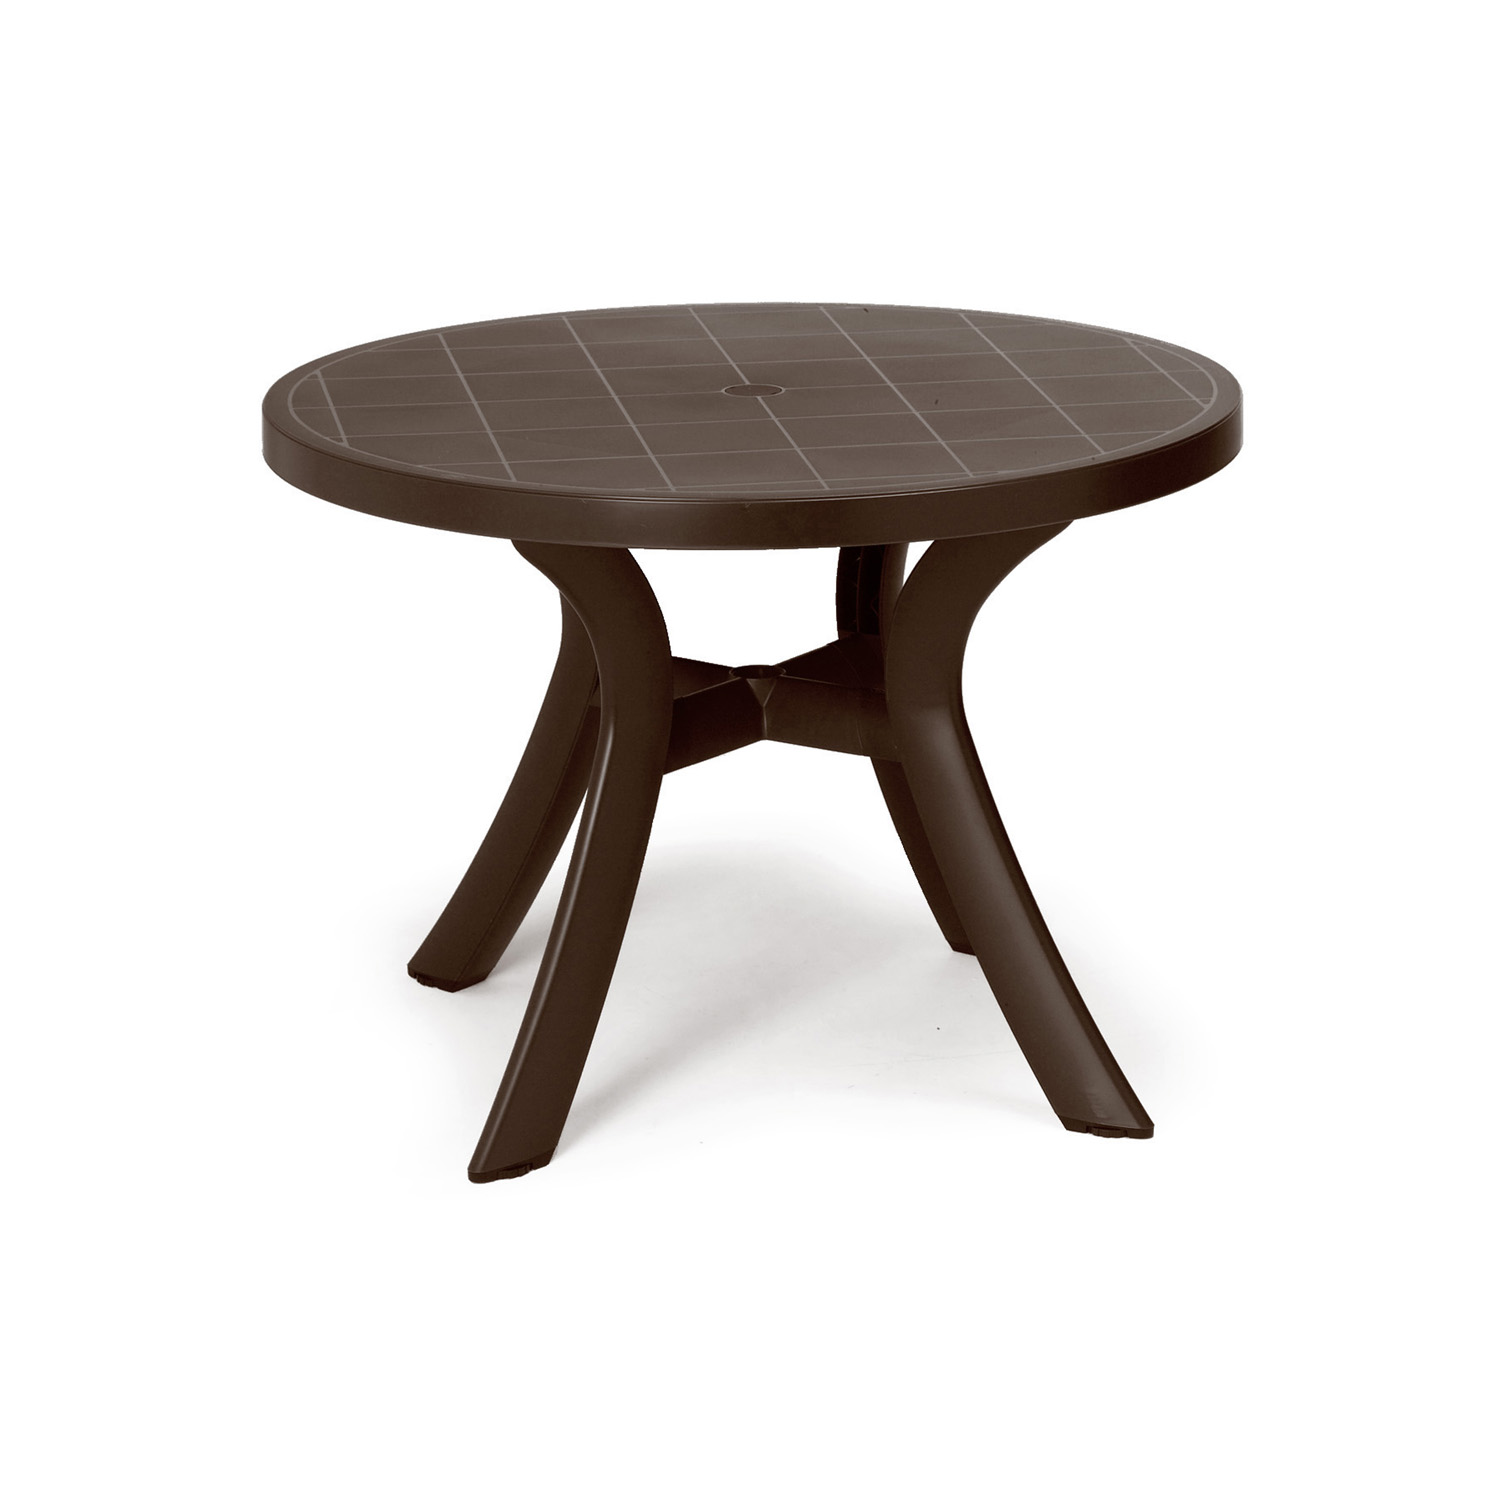 Toscana coffee table buy europa leisure toscana 165 coffee table with 2 delta toscana coffee Toscana coffee table